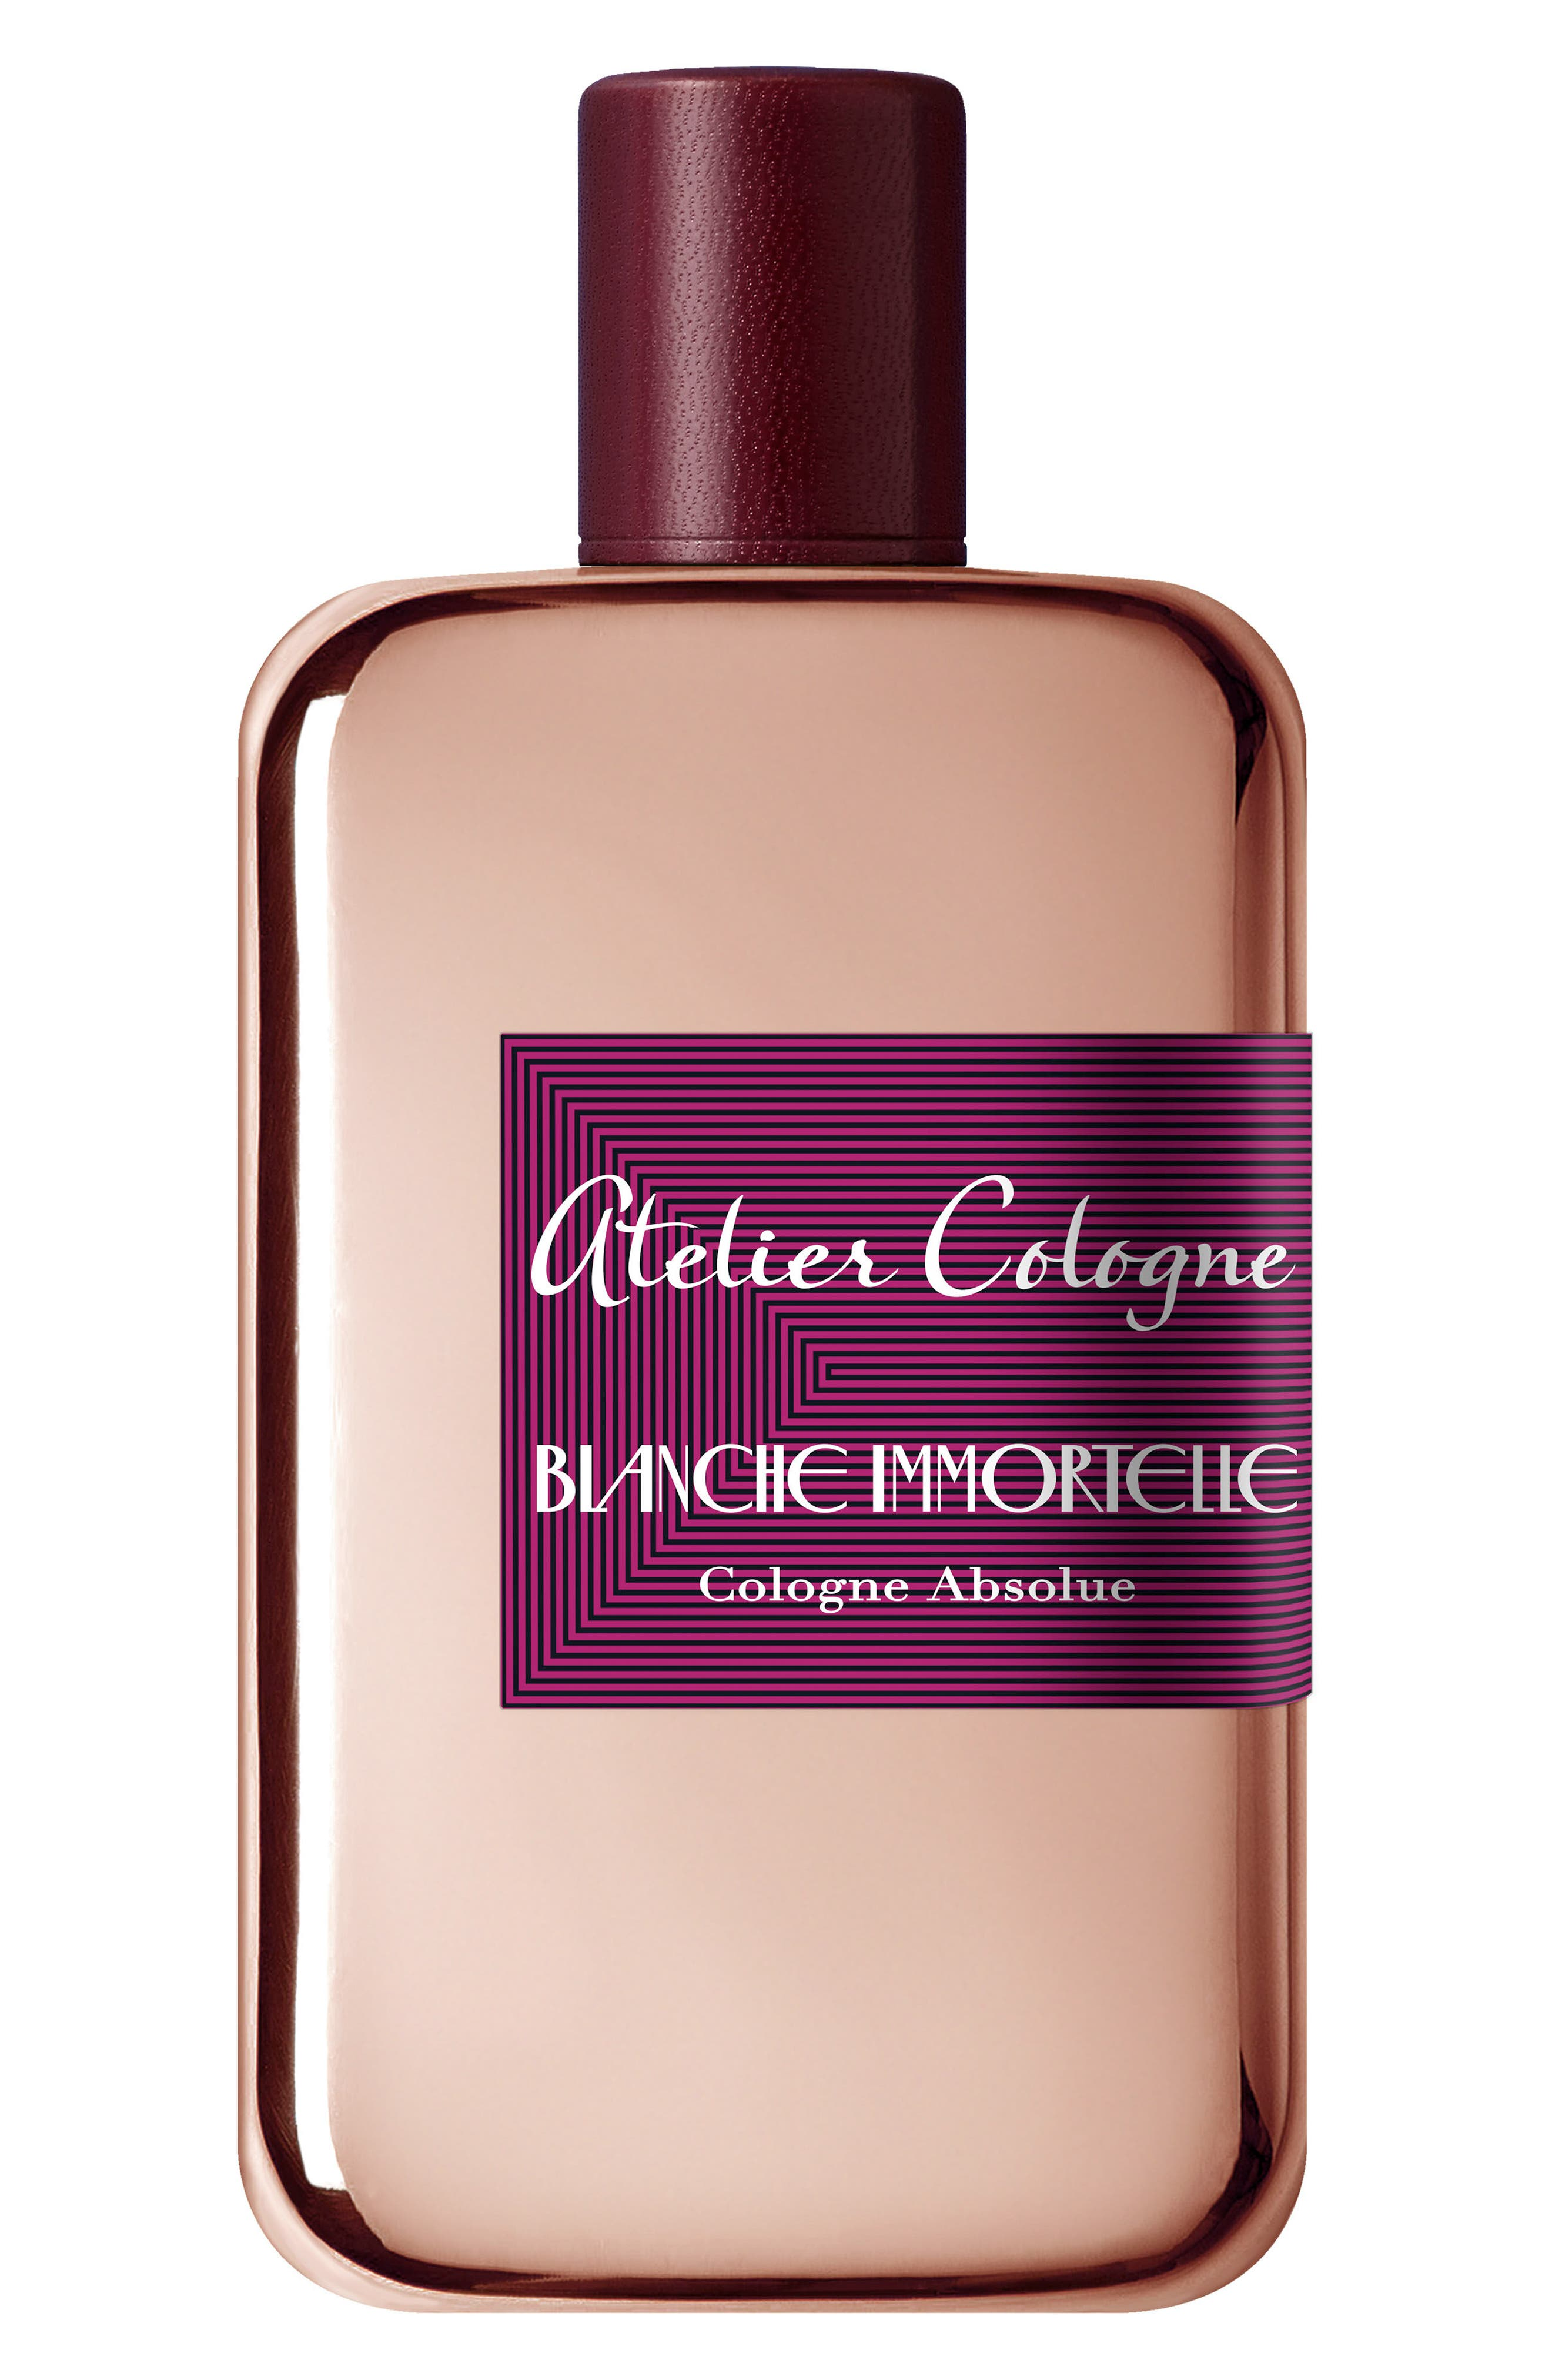 Atelier Cologne Blanche Immortelle Cologne Absolue